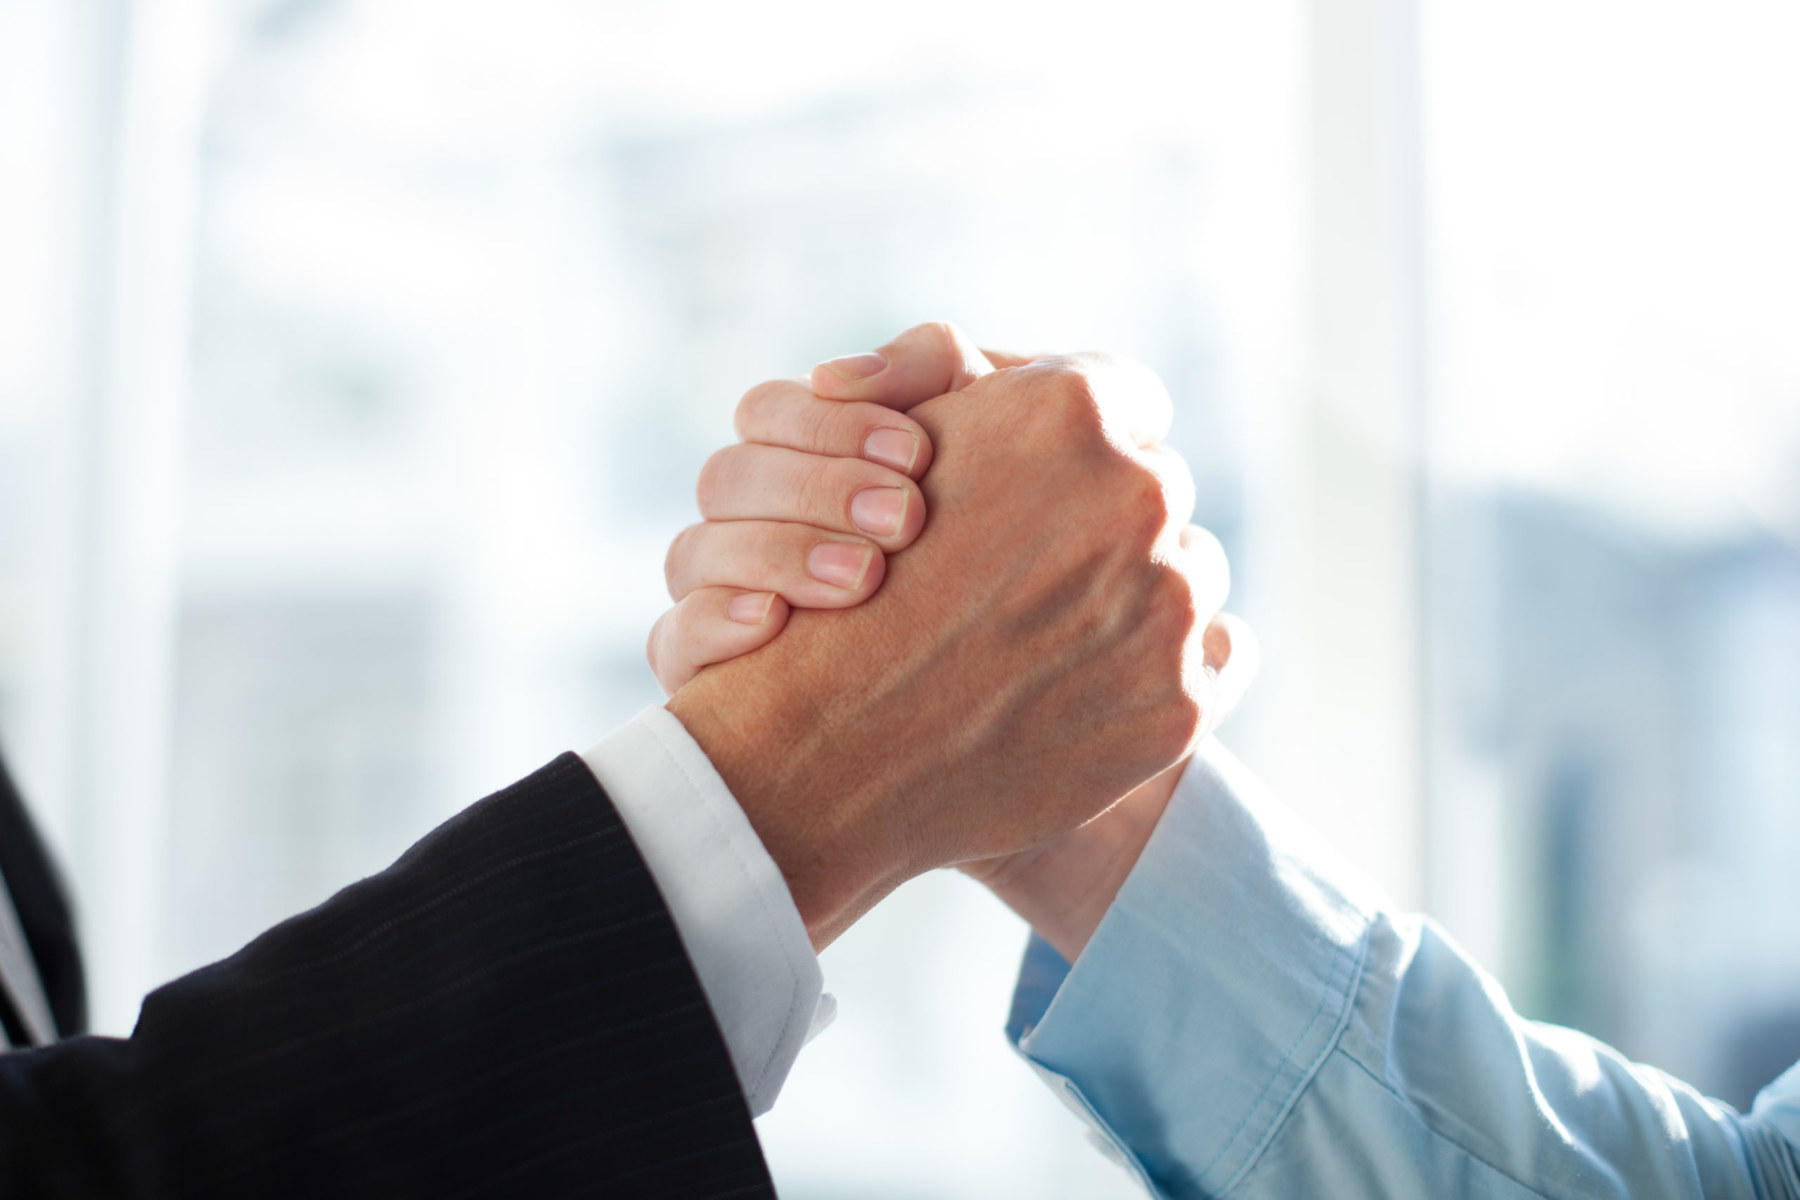 Close-up of two clasped hands of businessmen